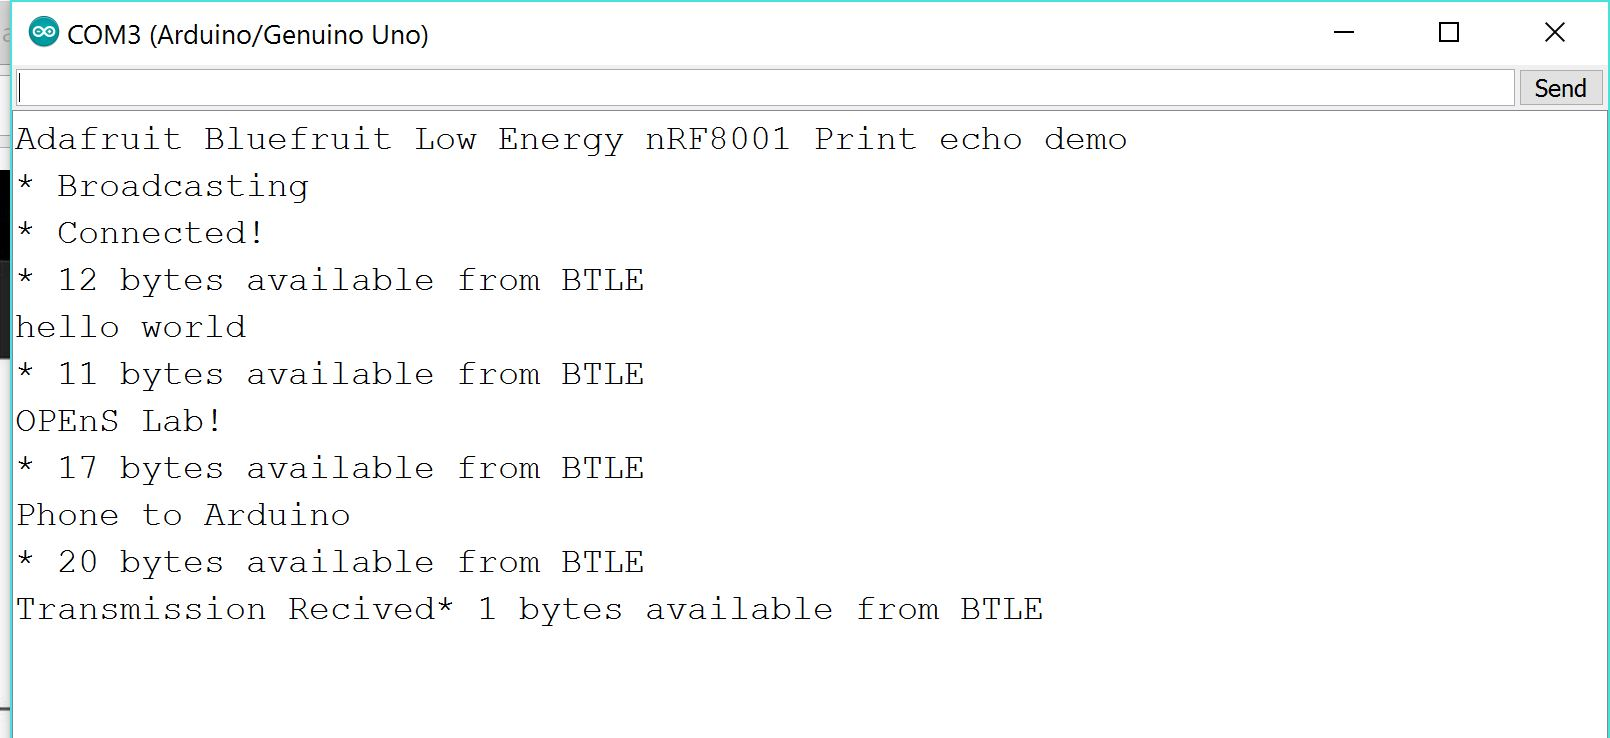 Snip from the Arduino Serial Monitor during testing